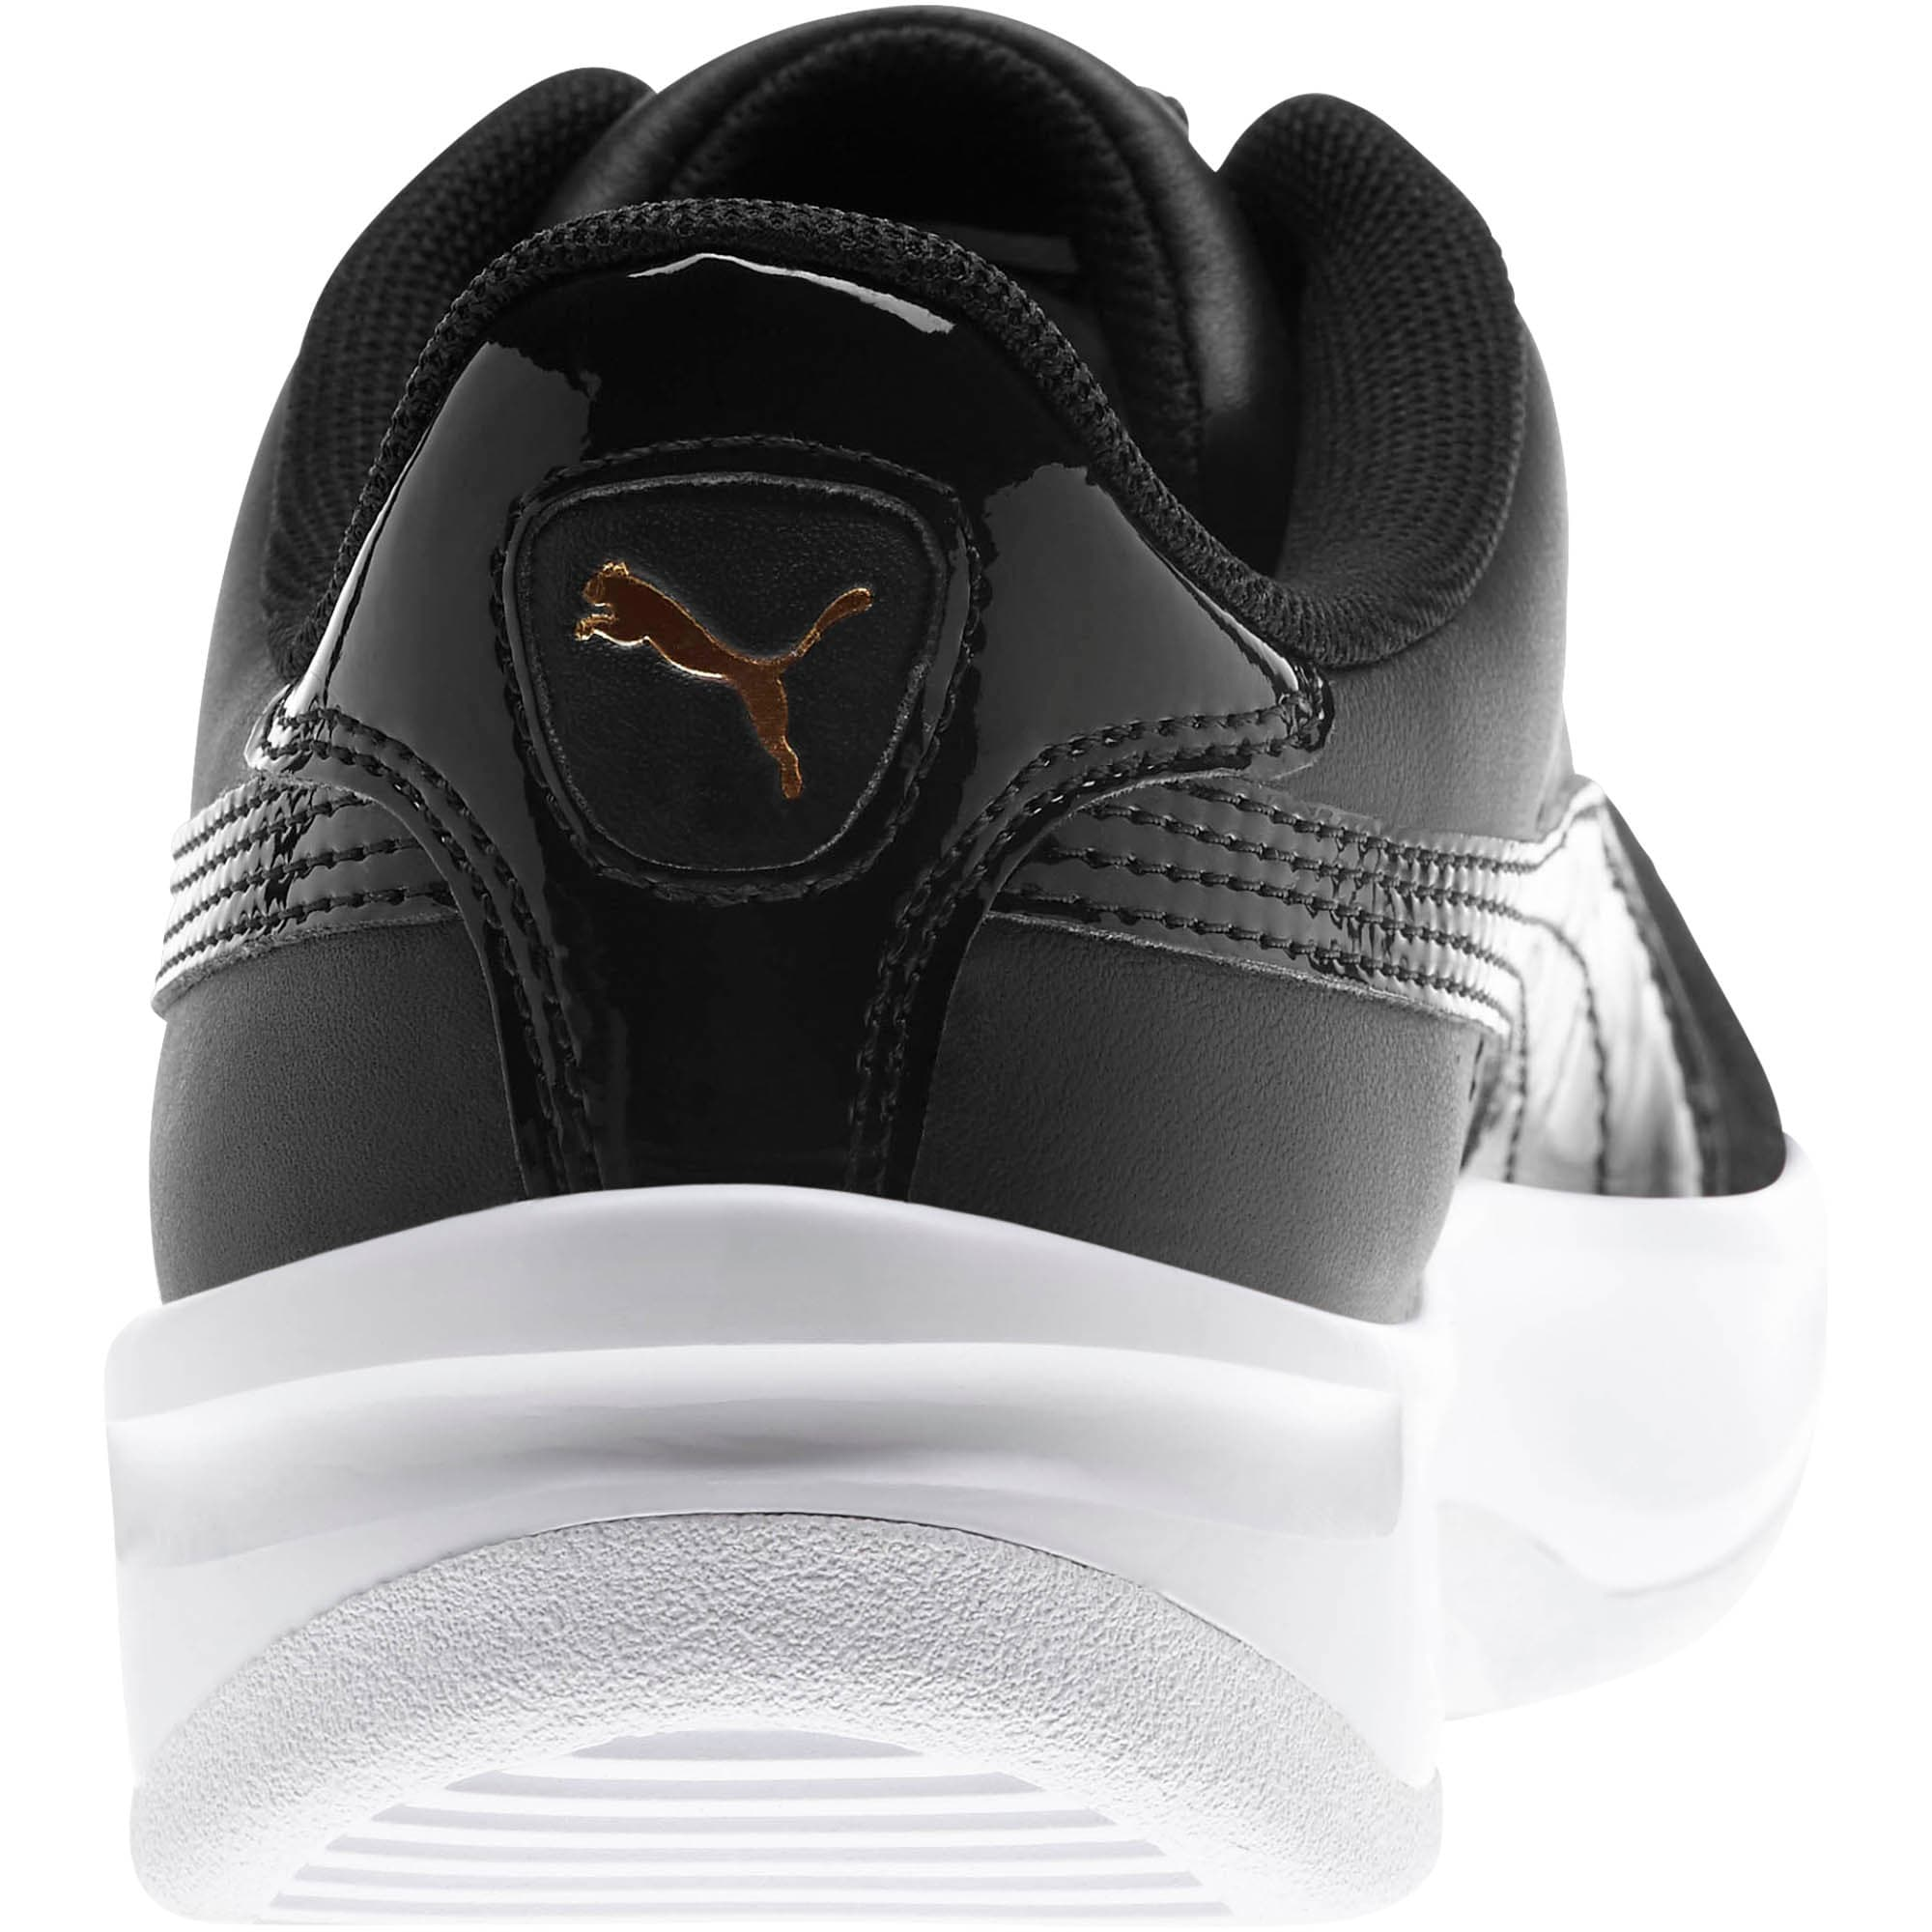 Thumbnail 3 of California Monochrome Women's Sneakers, Puma Black-Puma Team Gold, medium